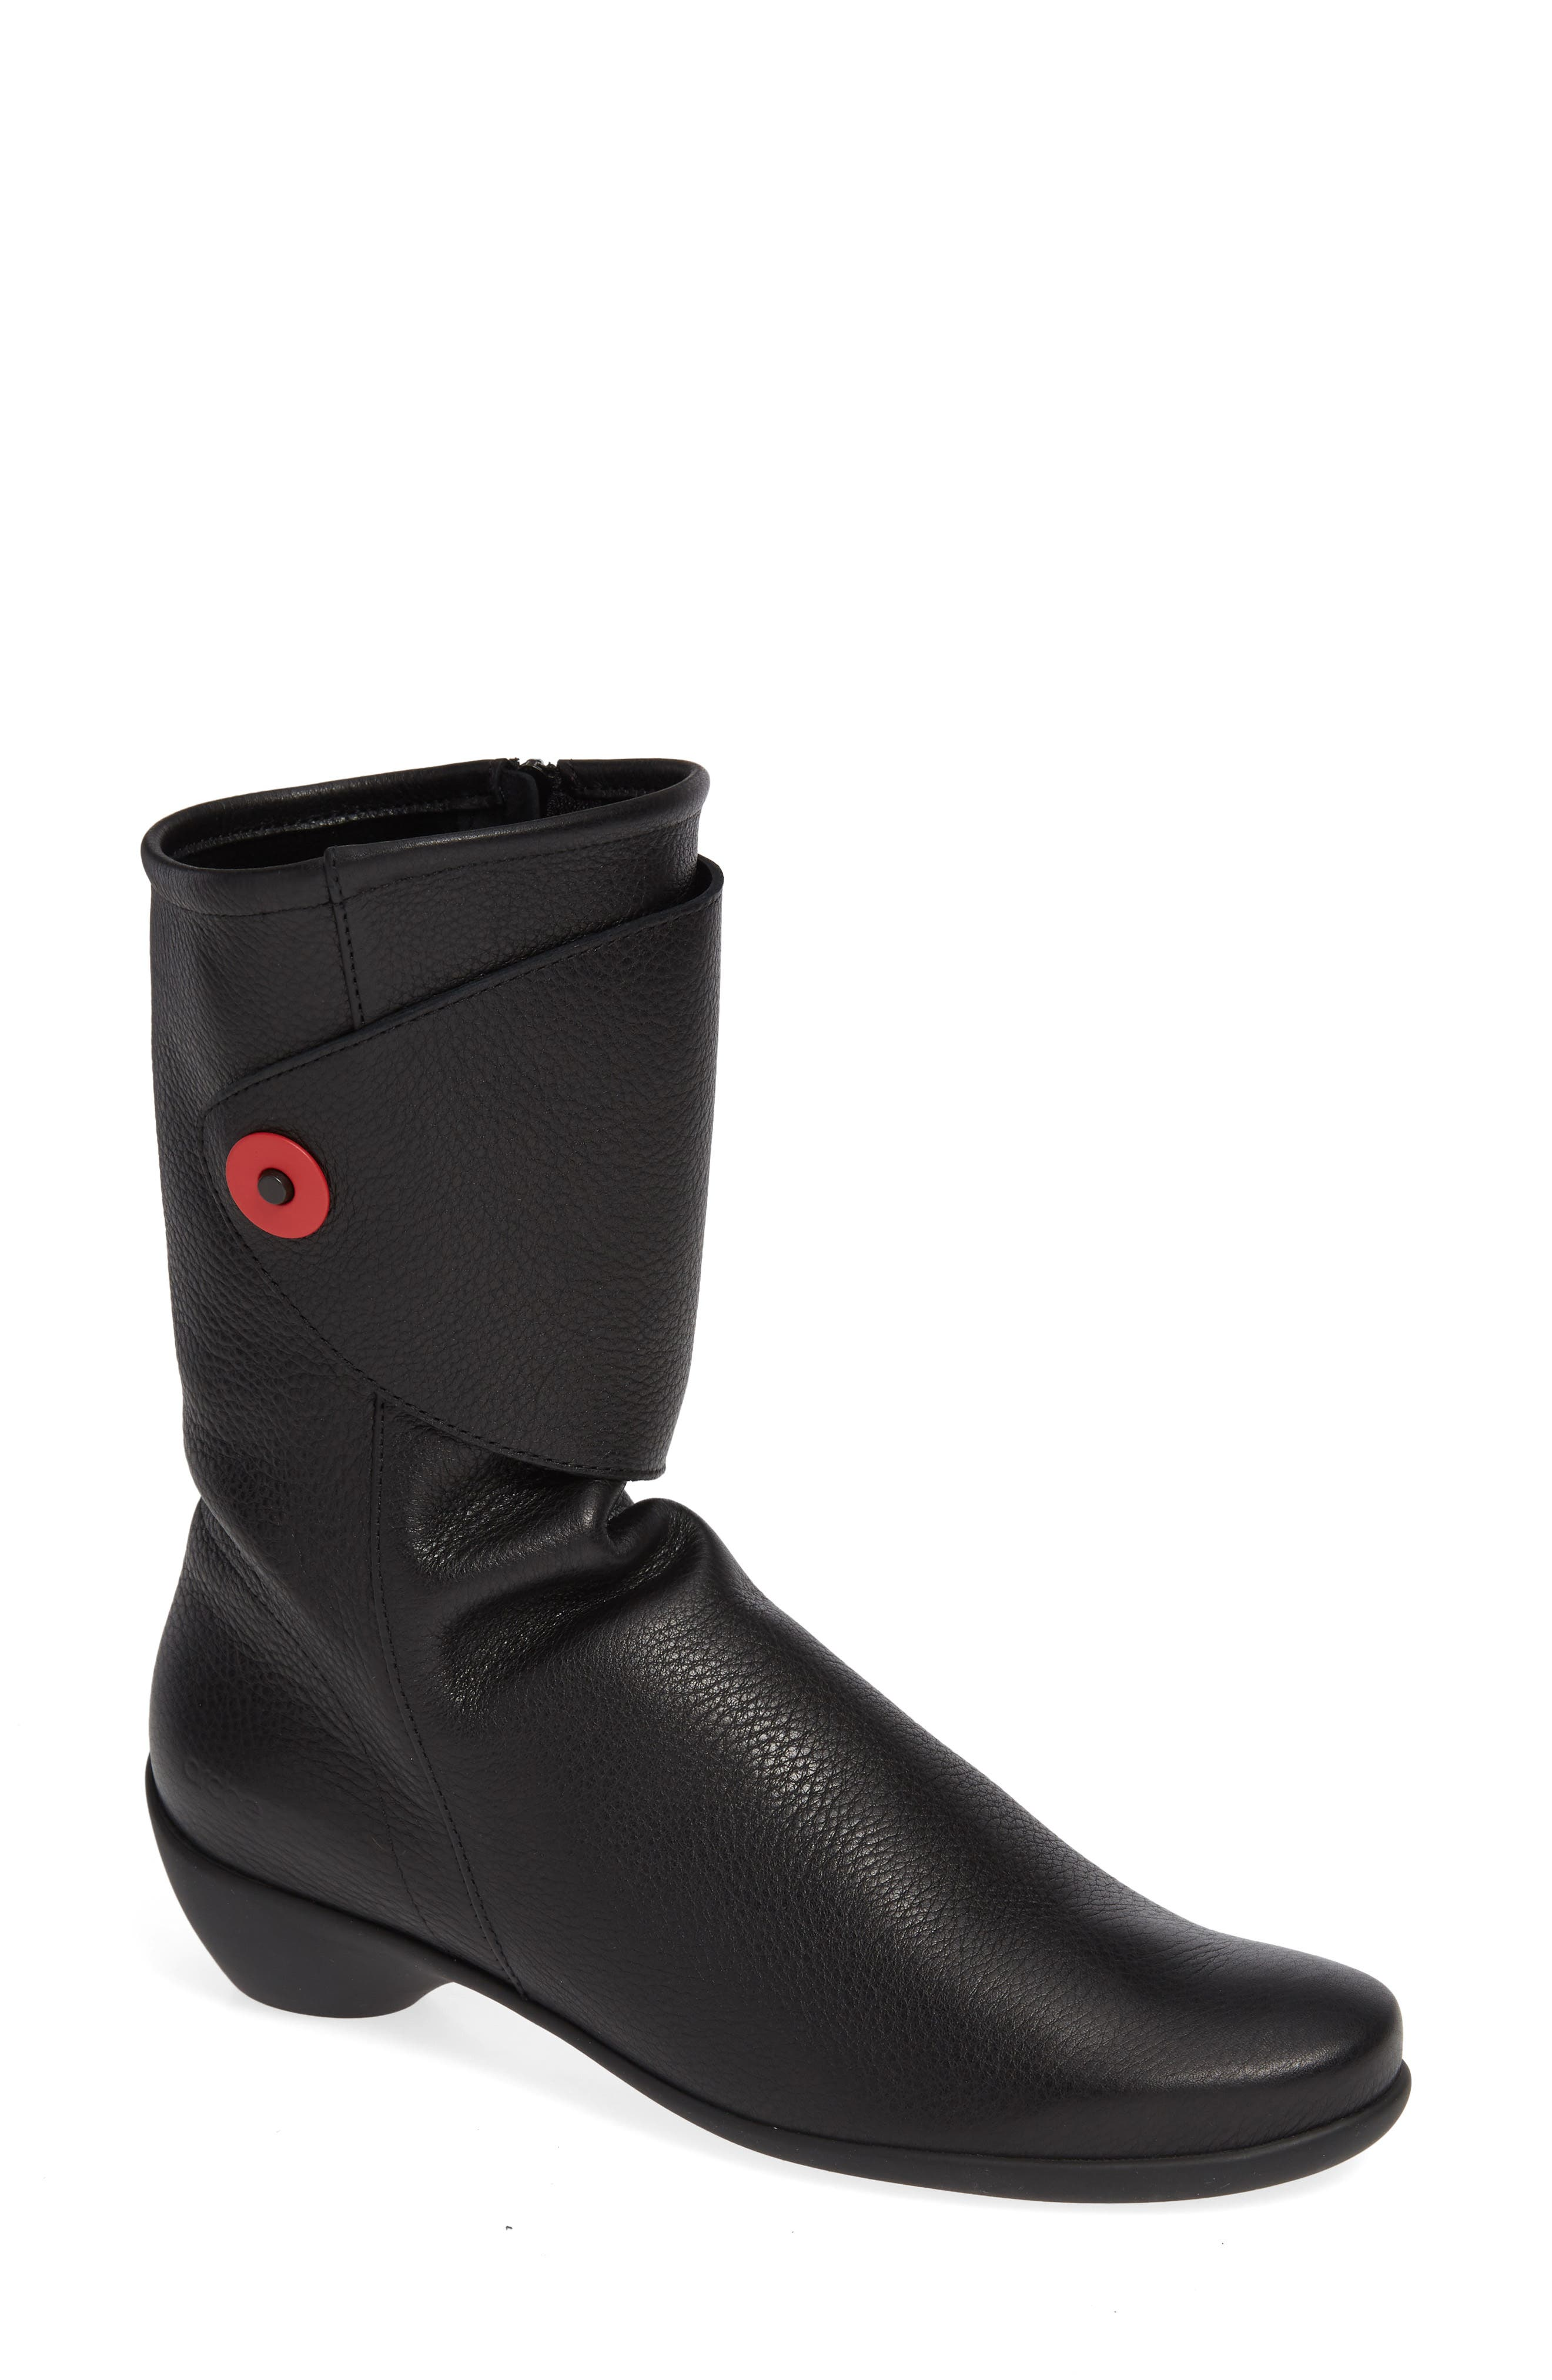 Arche Tessmy Water Resistant Boot, Black